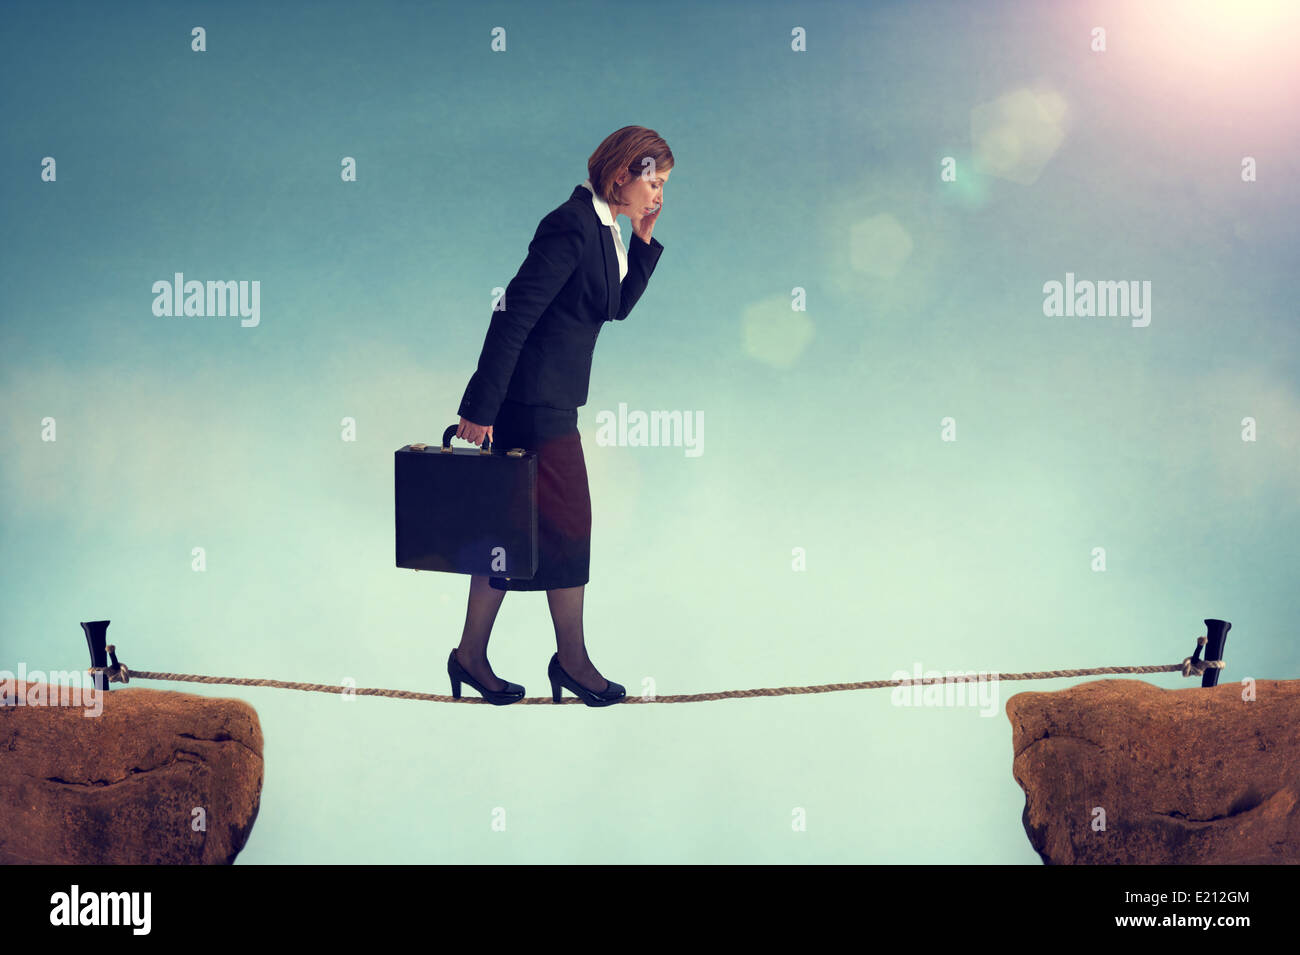 confident businesswoman walking a tightrope or highwire multitasking - Stock Image